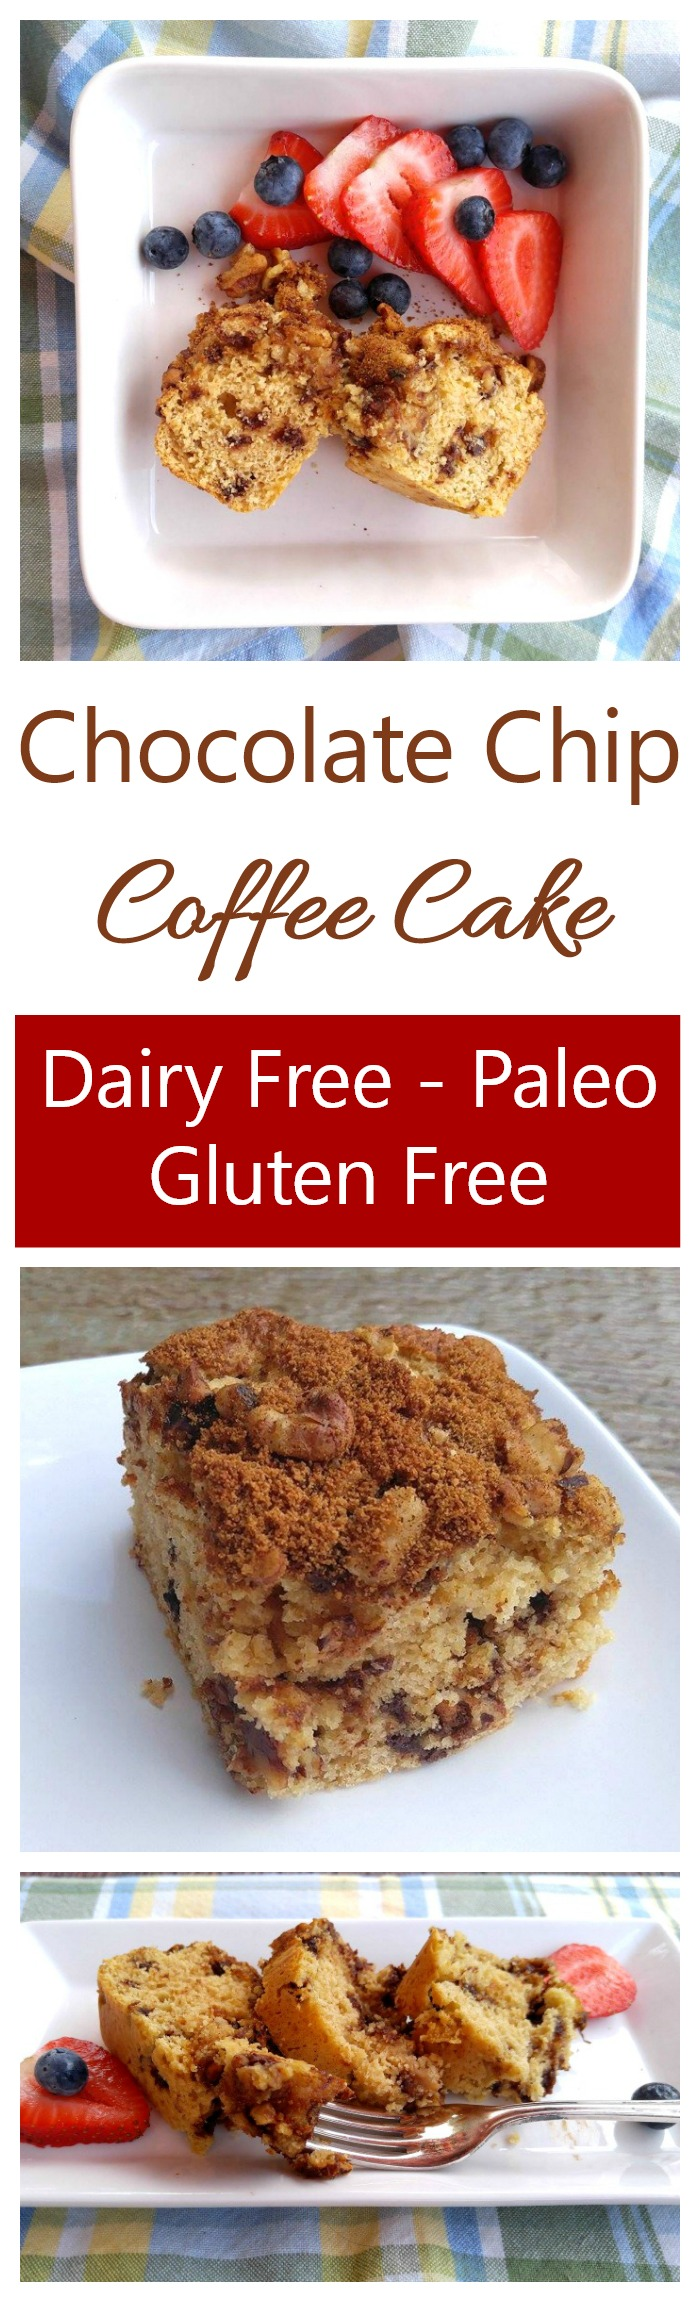 This chocolate chip coffee cake is dairy free, gluten free and fits into a Paleo diet. It's easy to make and super tasty.